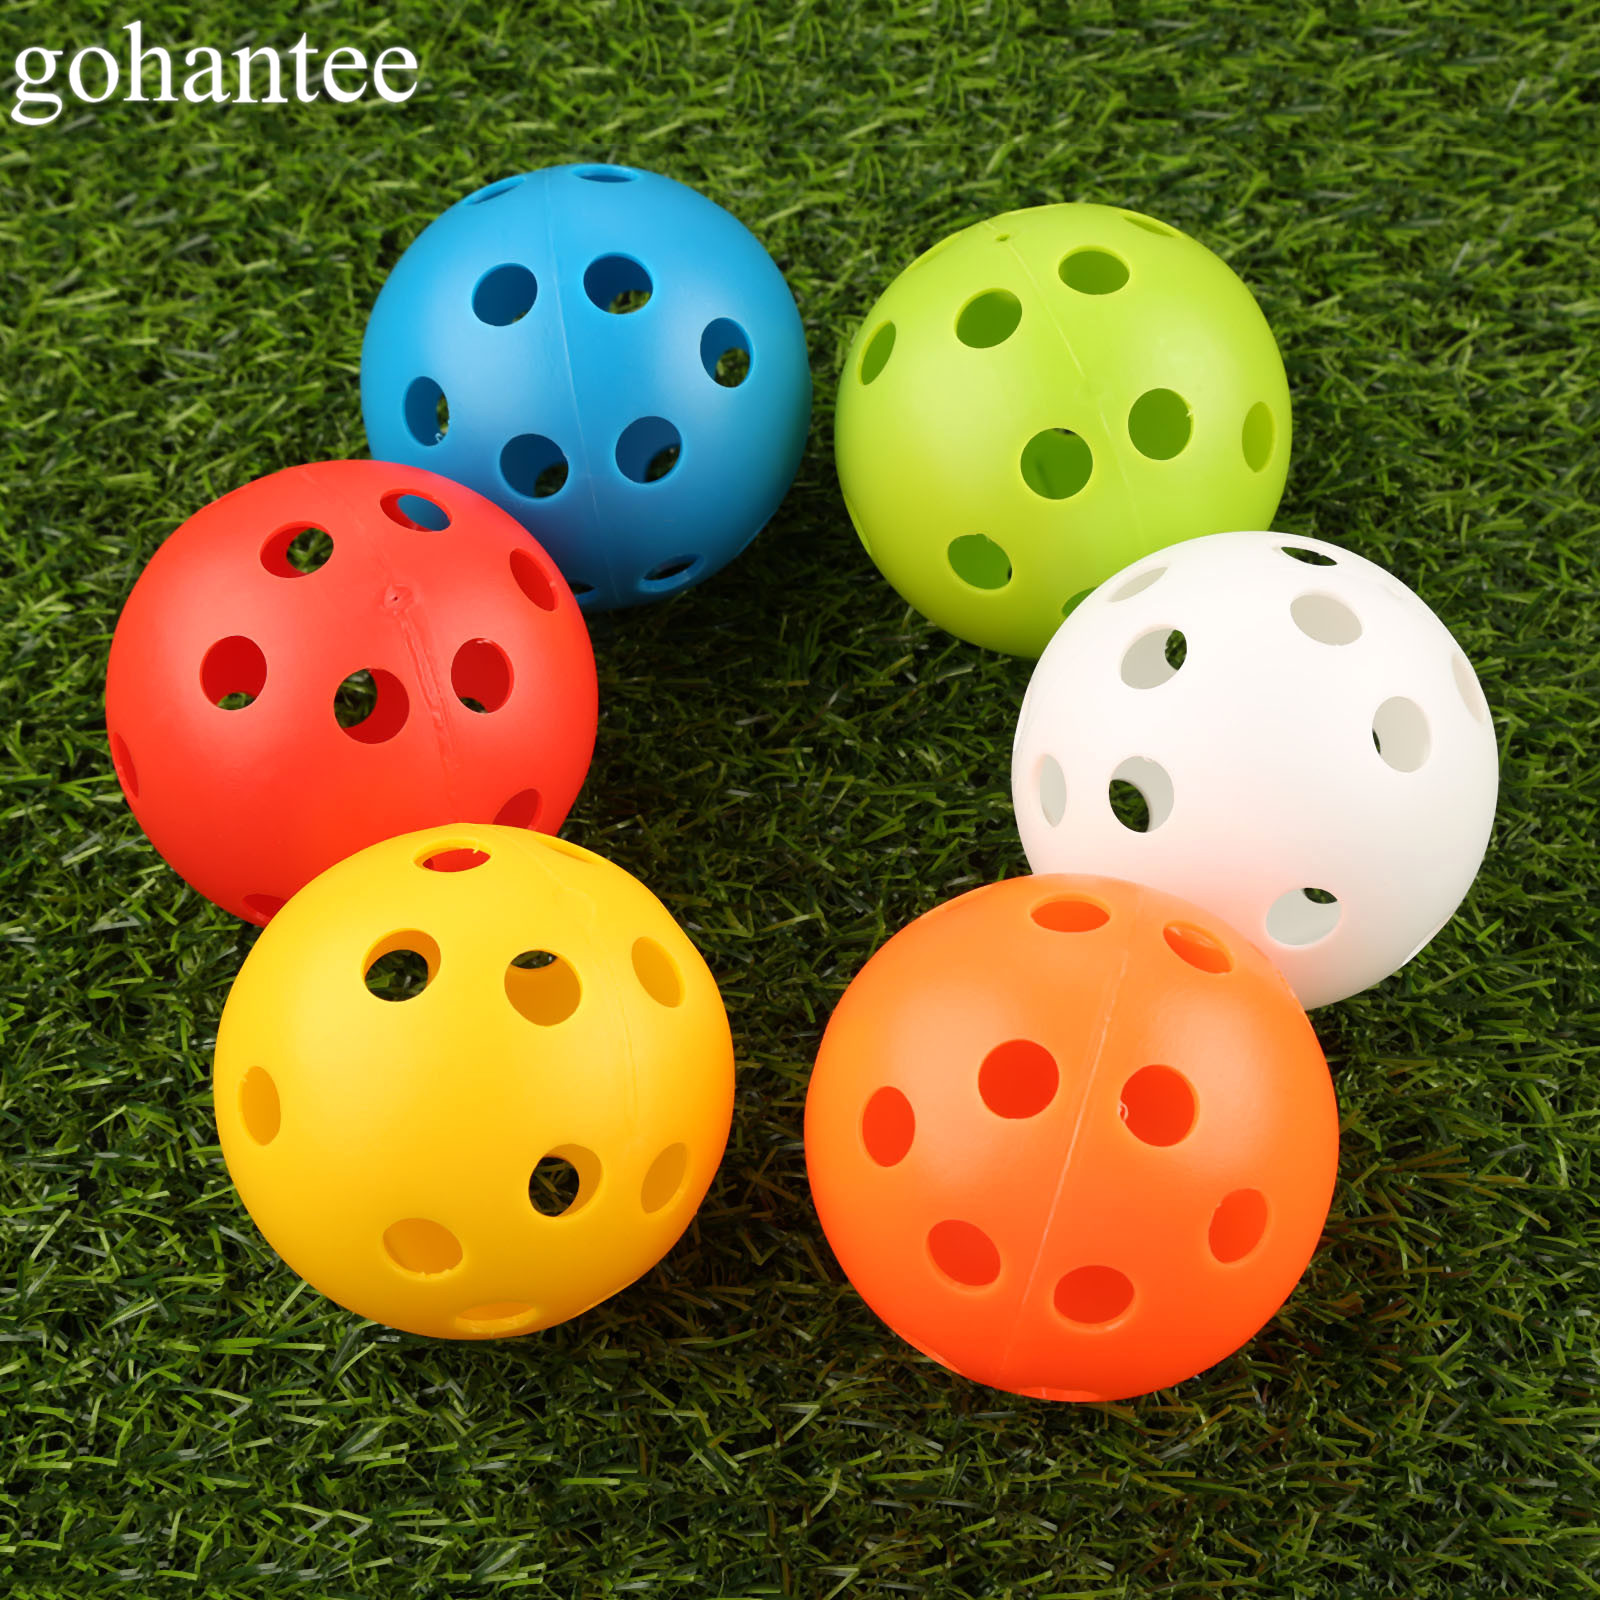 Gohantee 10Pcs 72mm Golf Training Balls Plastic Airflow Hollow With Hole Golf Balls Outdoor Golf Practice Balls Golf Accessories